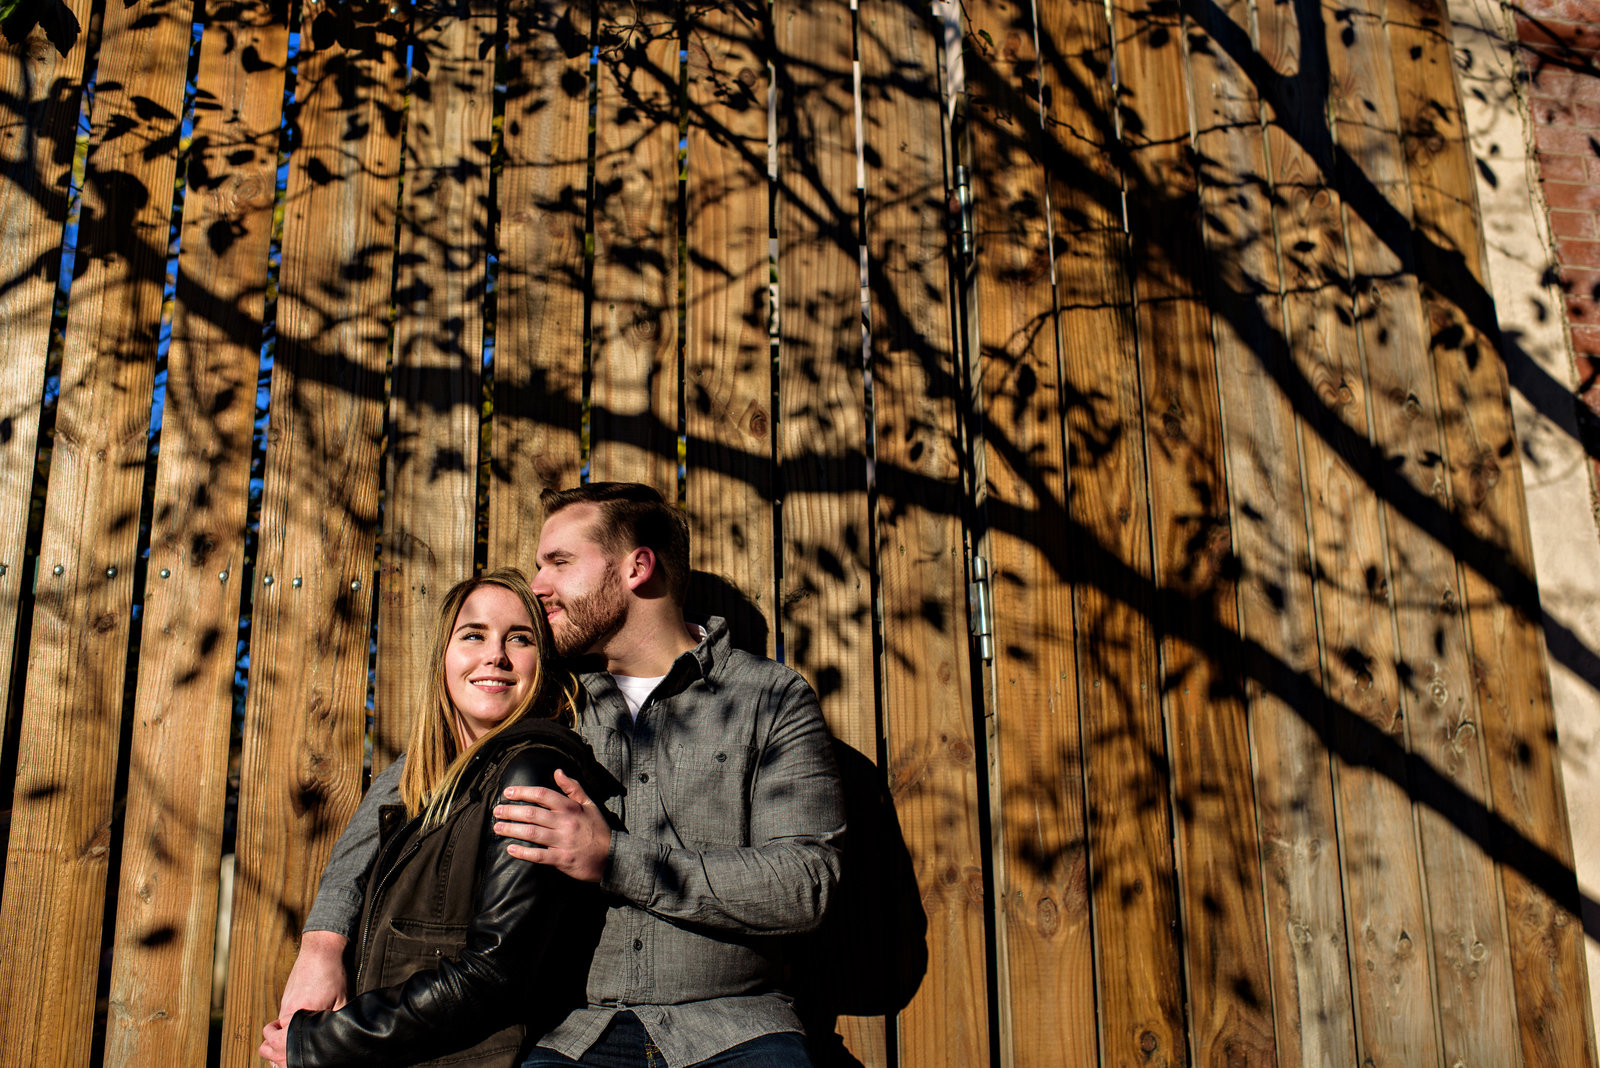 The shadow of a tree frame this fun couple in their engagement session.